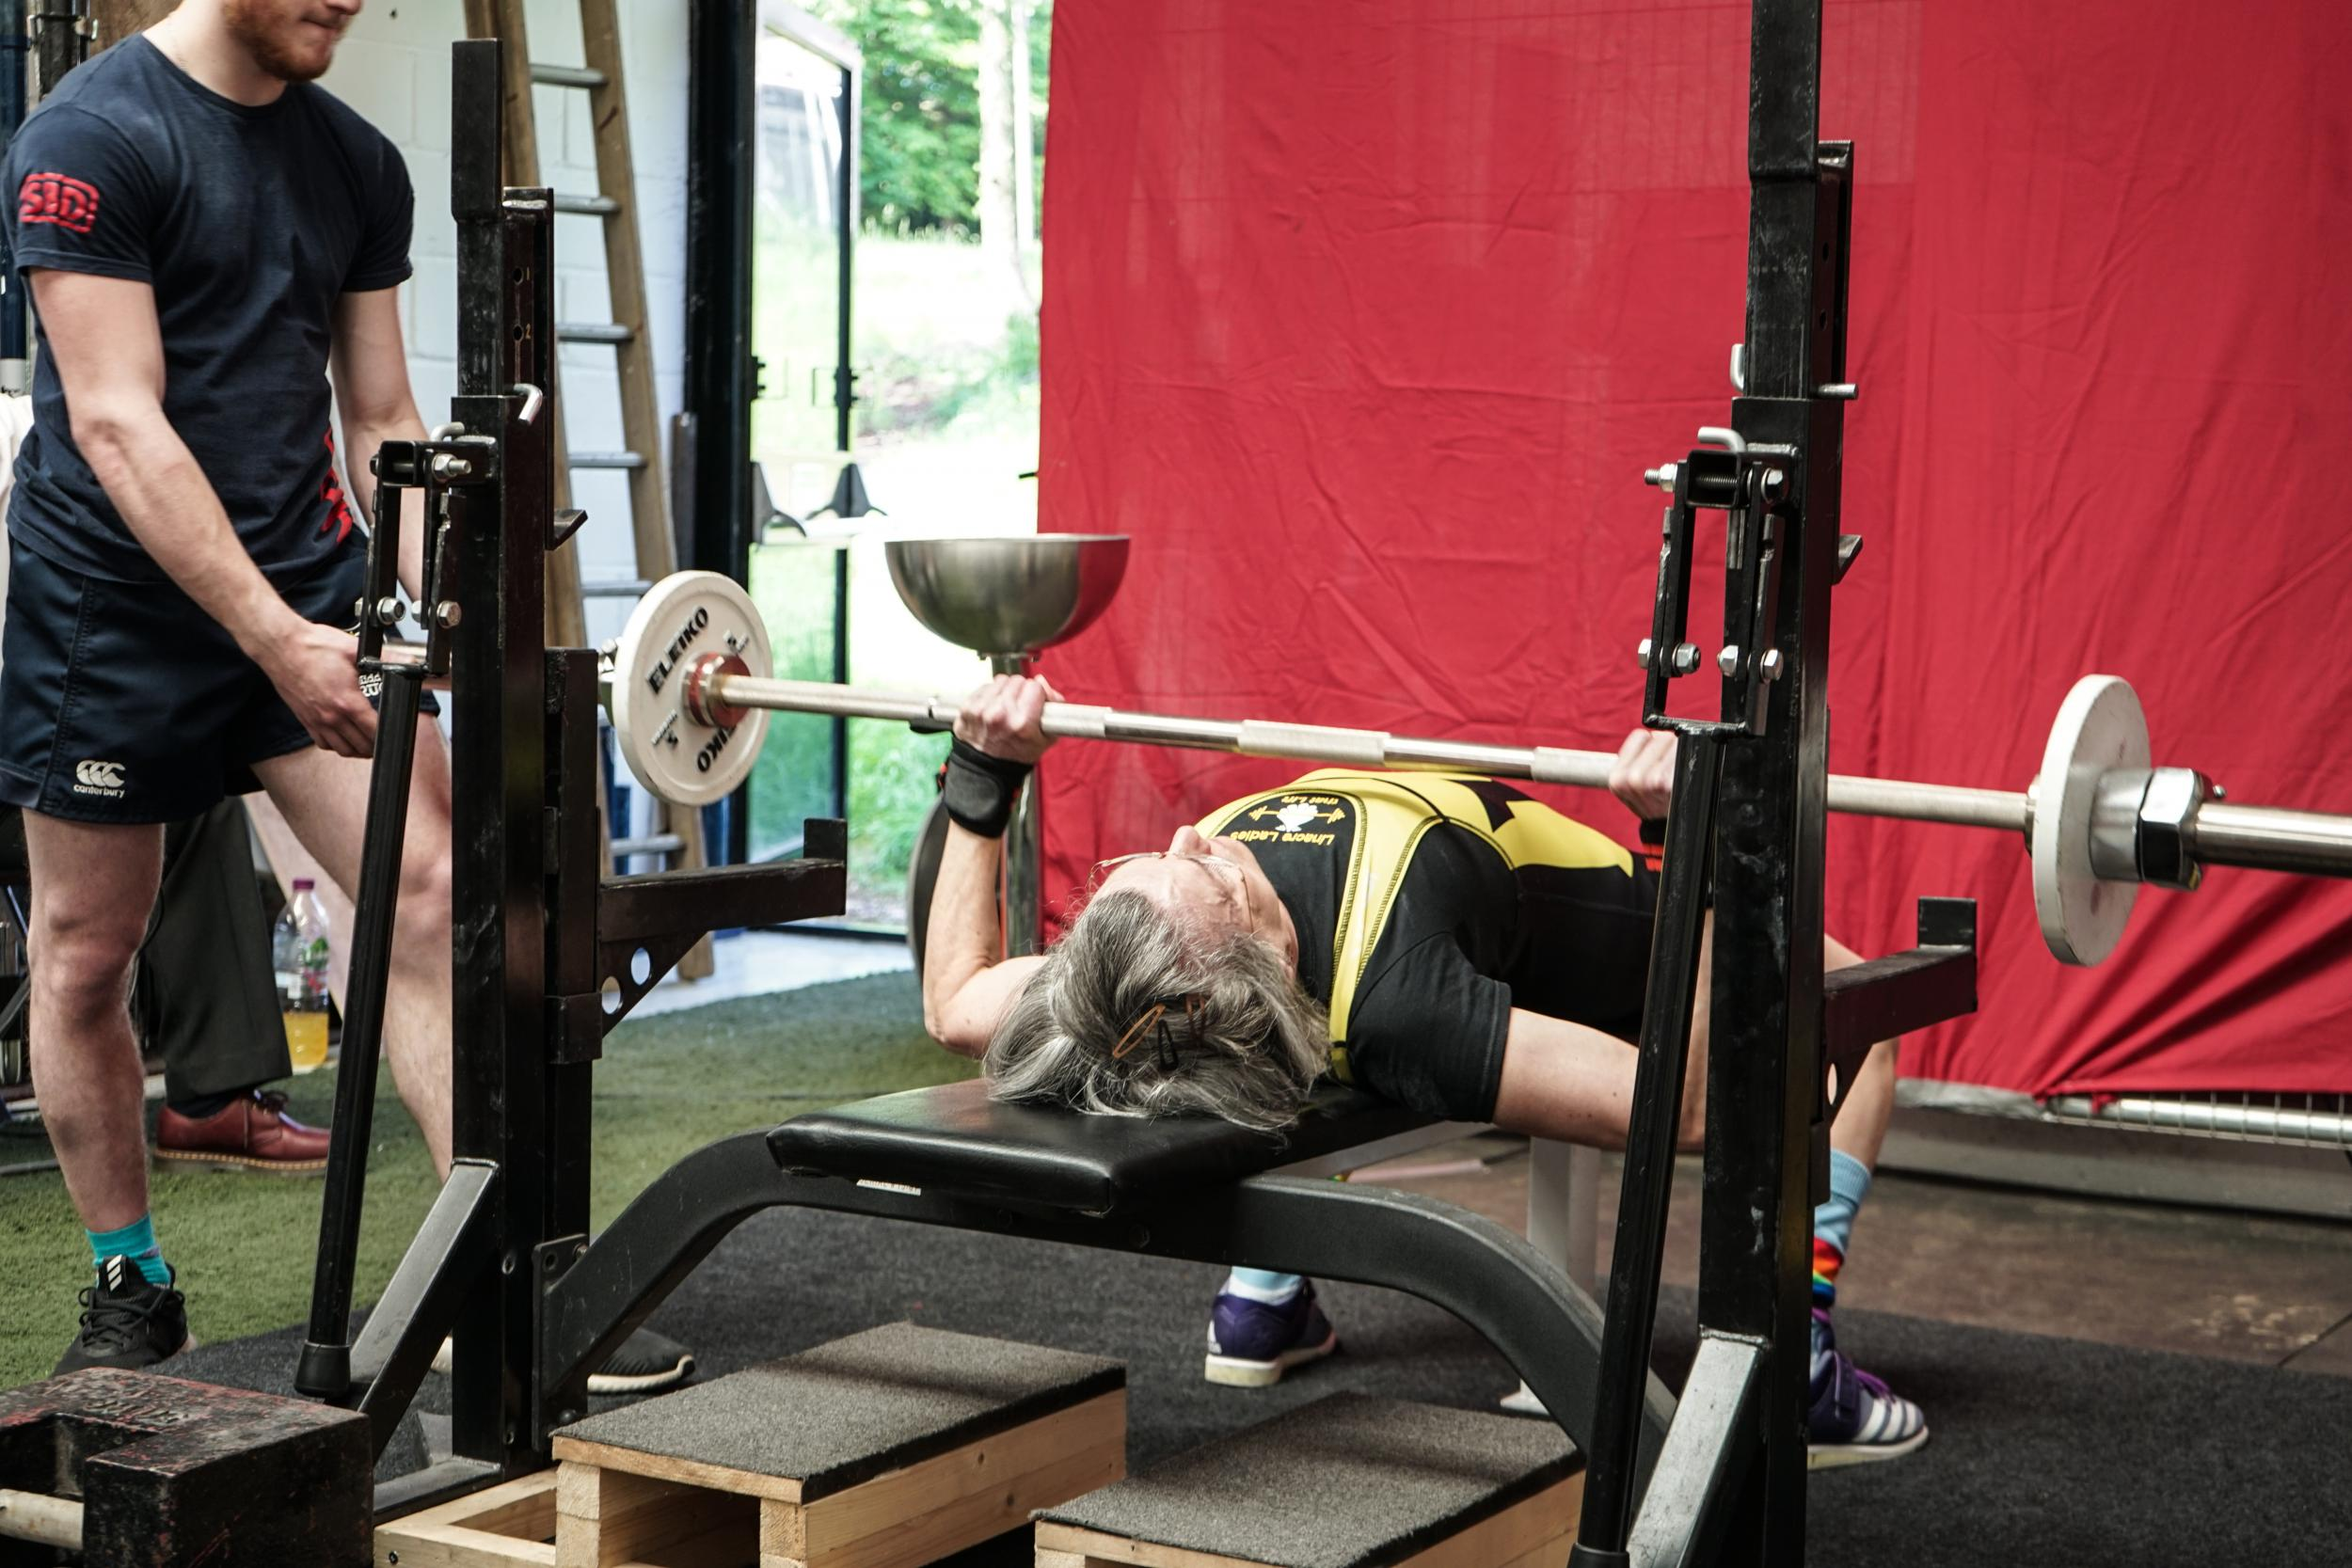 Meet the 71-year-old powerlifter encouraging other women to